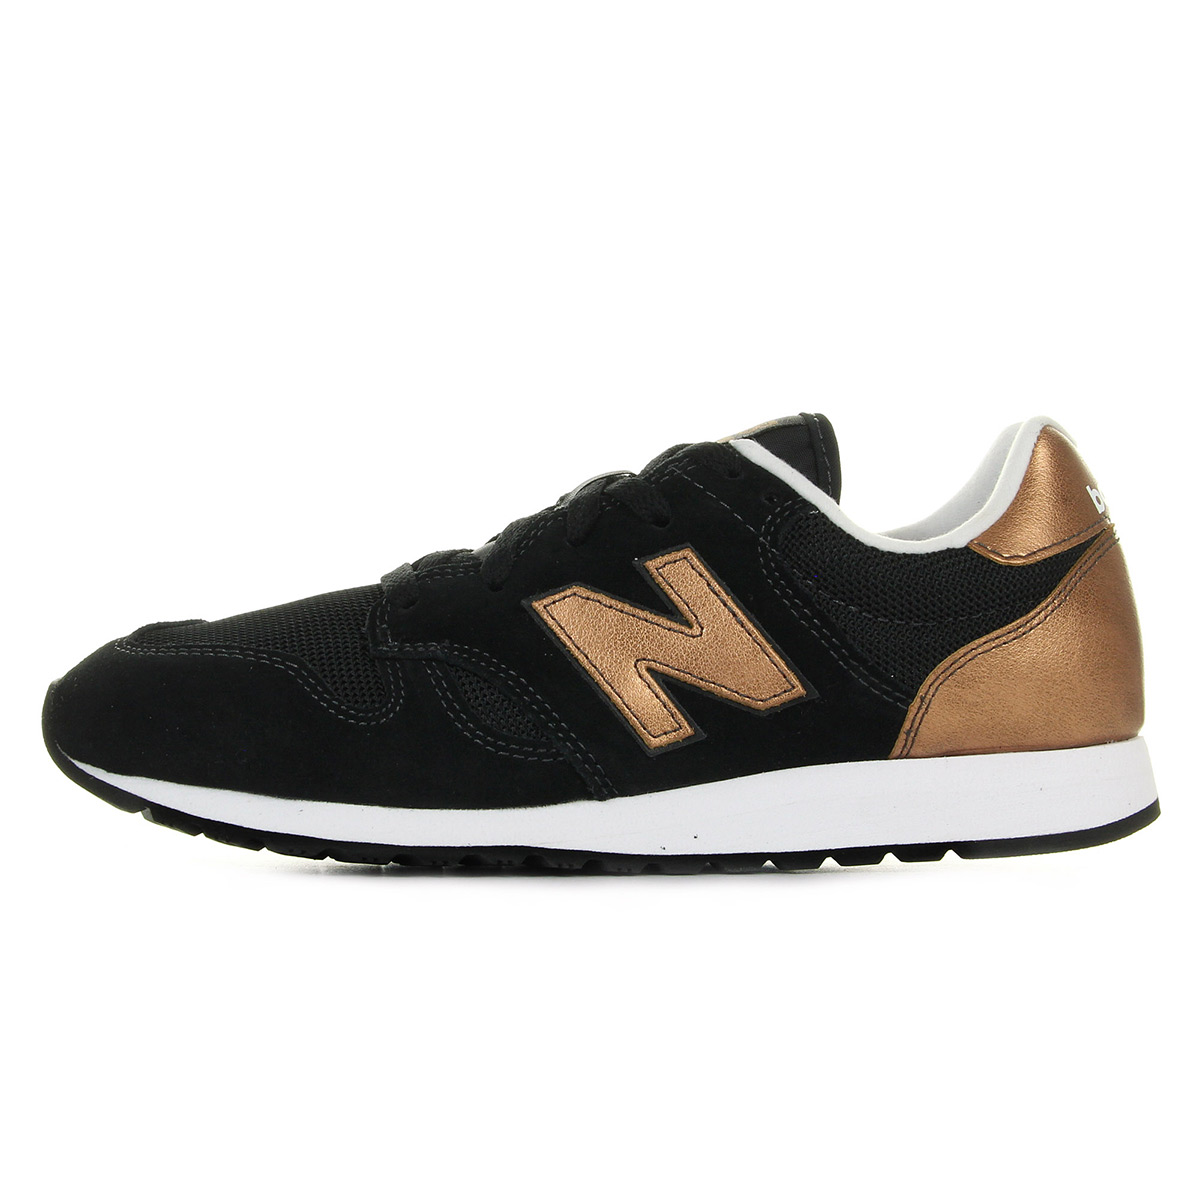 new balance homme rouge et bleu garderie in english